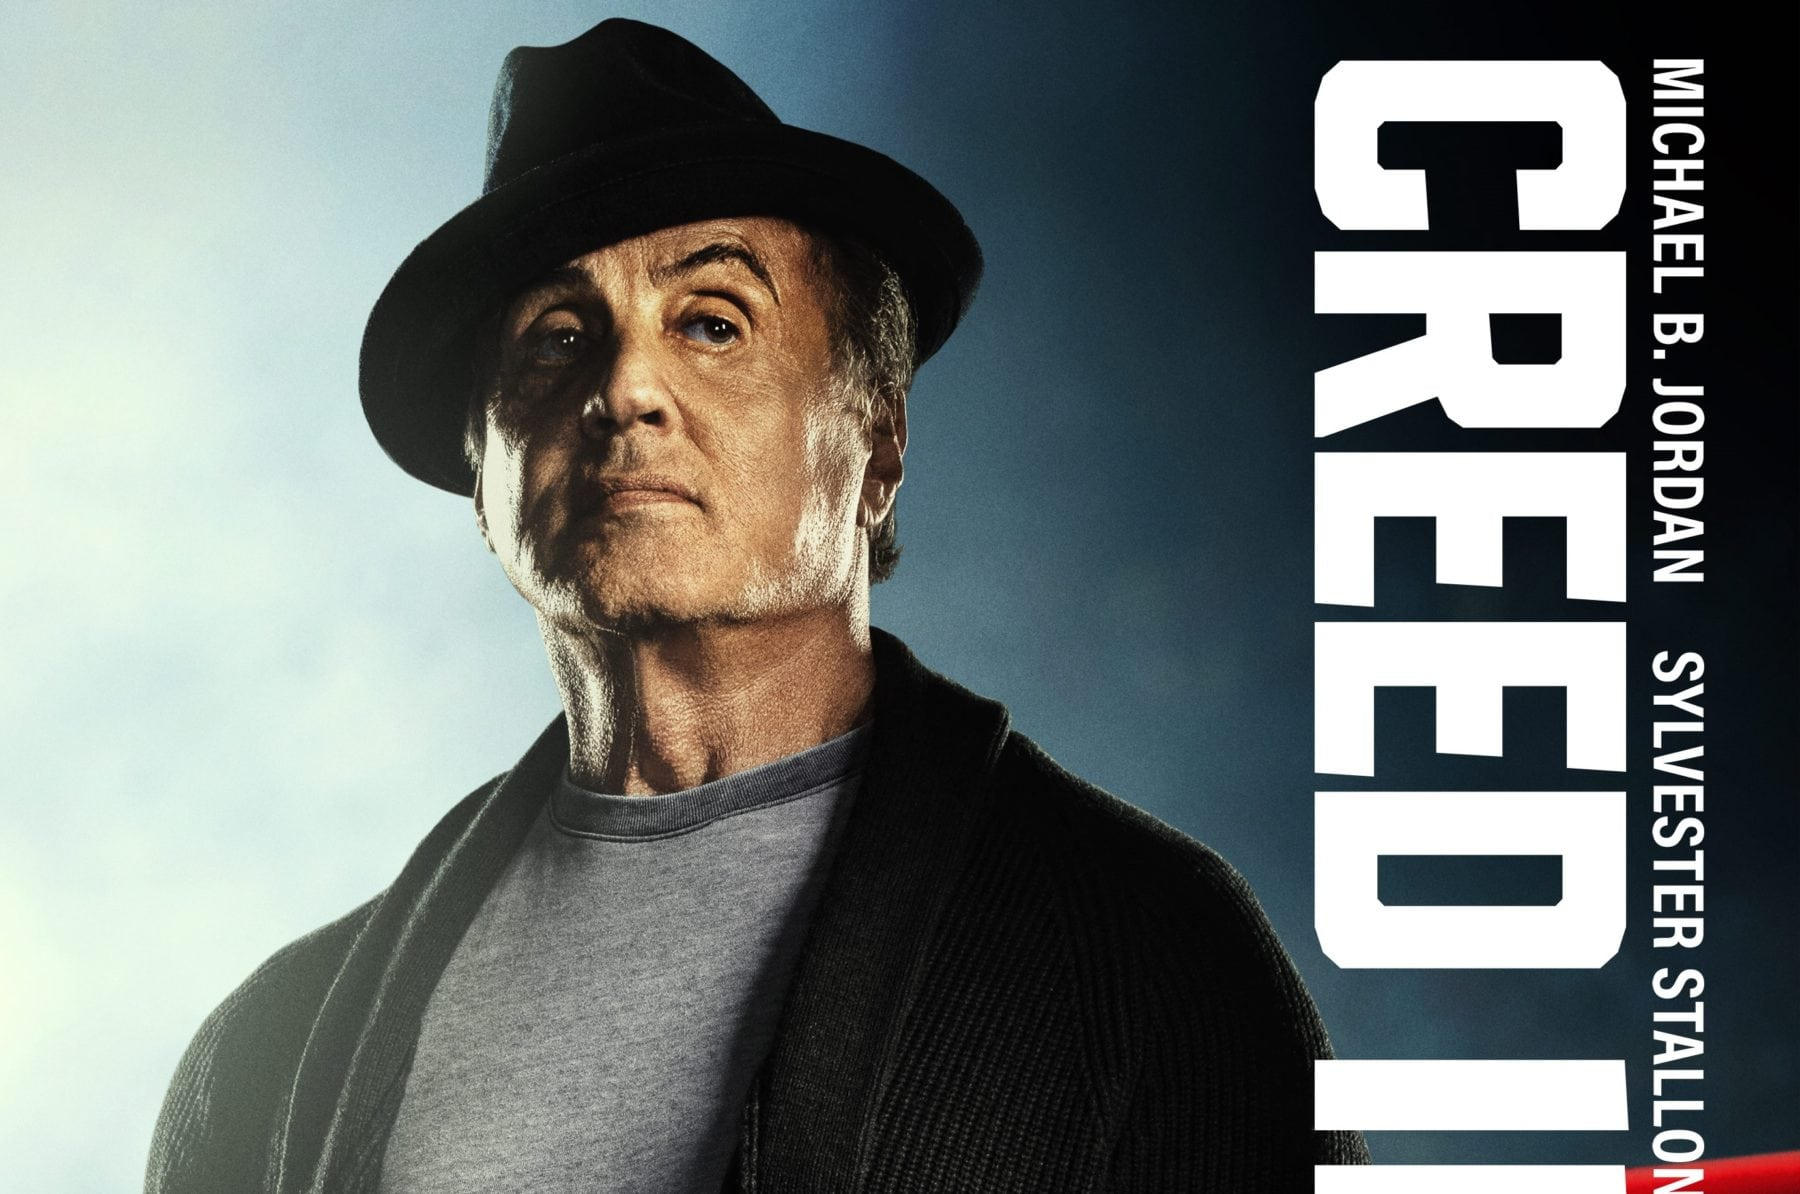 sylvester stallone on reprising rocky role for creed ii and passing